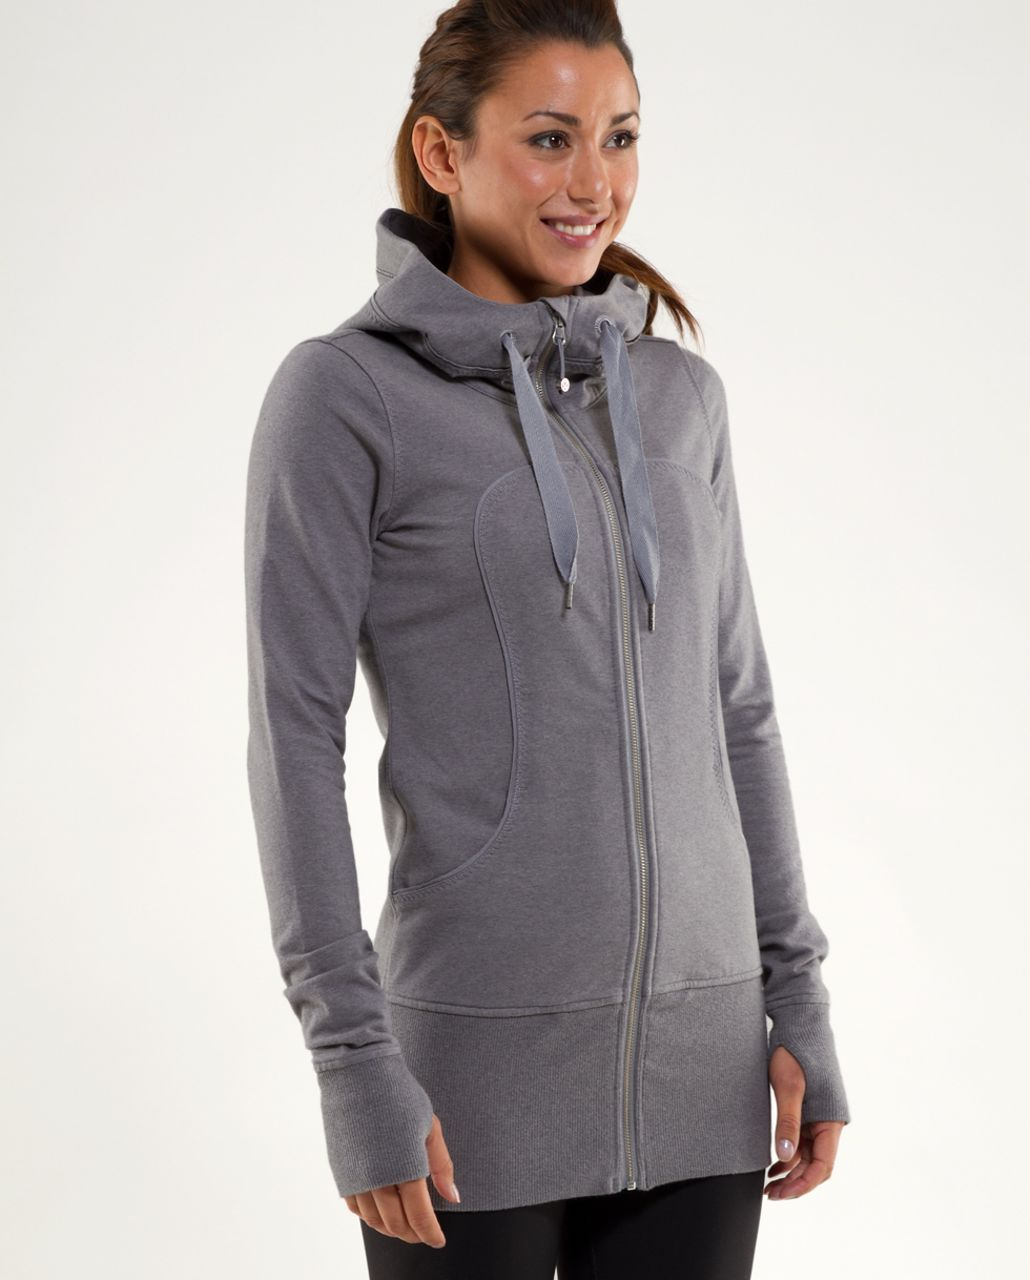 Lululemon Live Simply Jacket - Heathered Blurred Grey